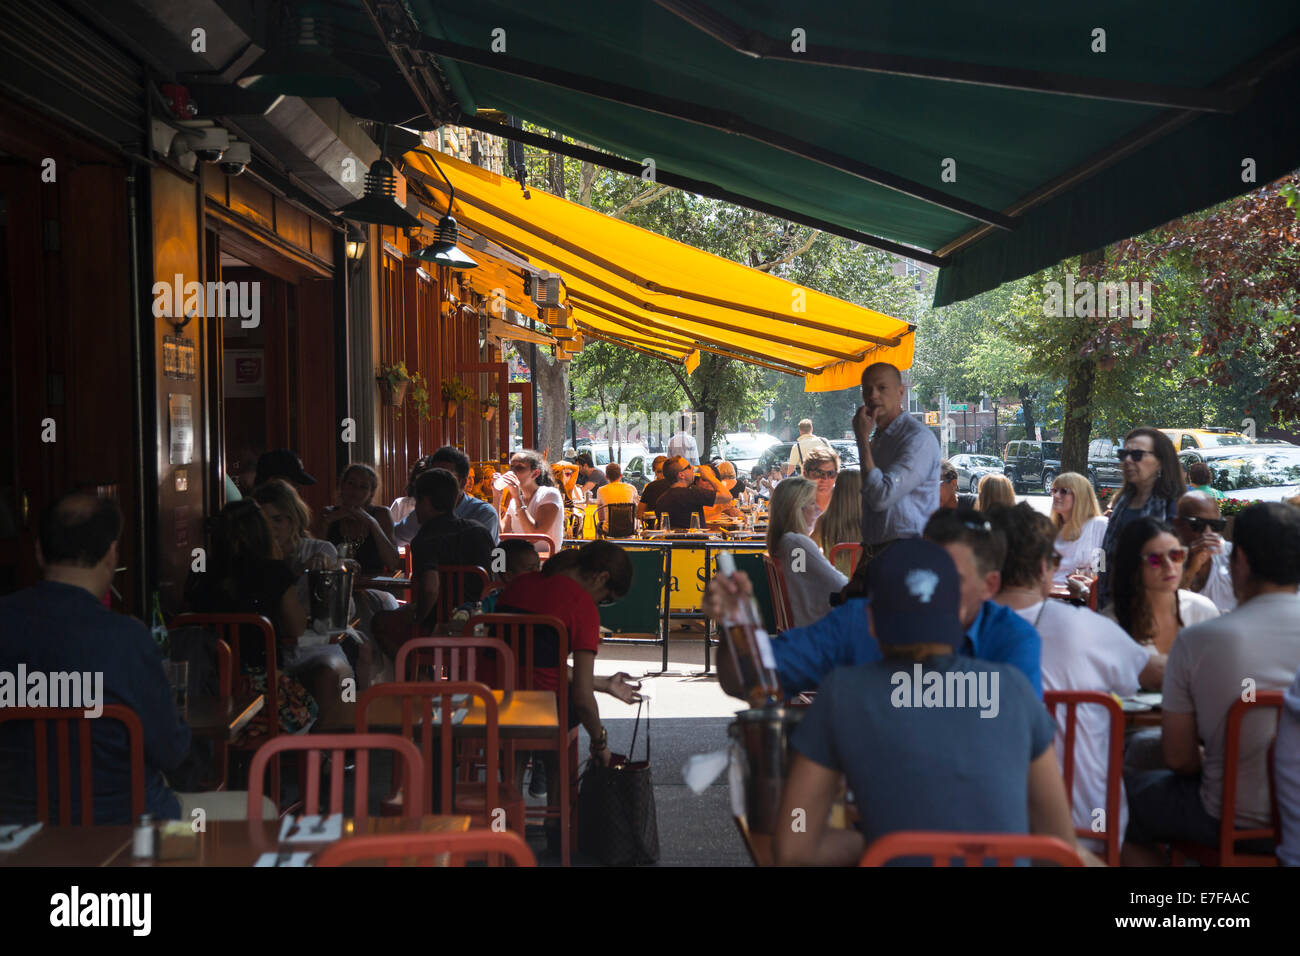 restaurant al fresco dining sunday brunch - Stock Image